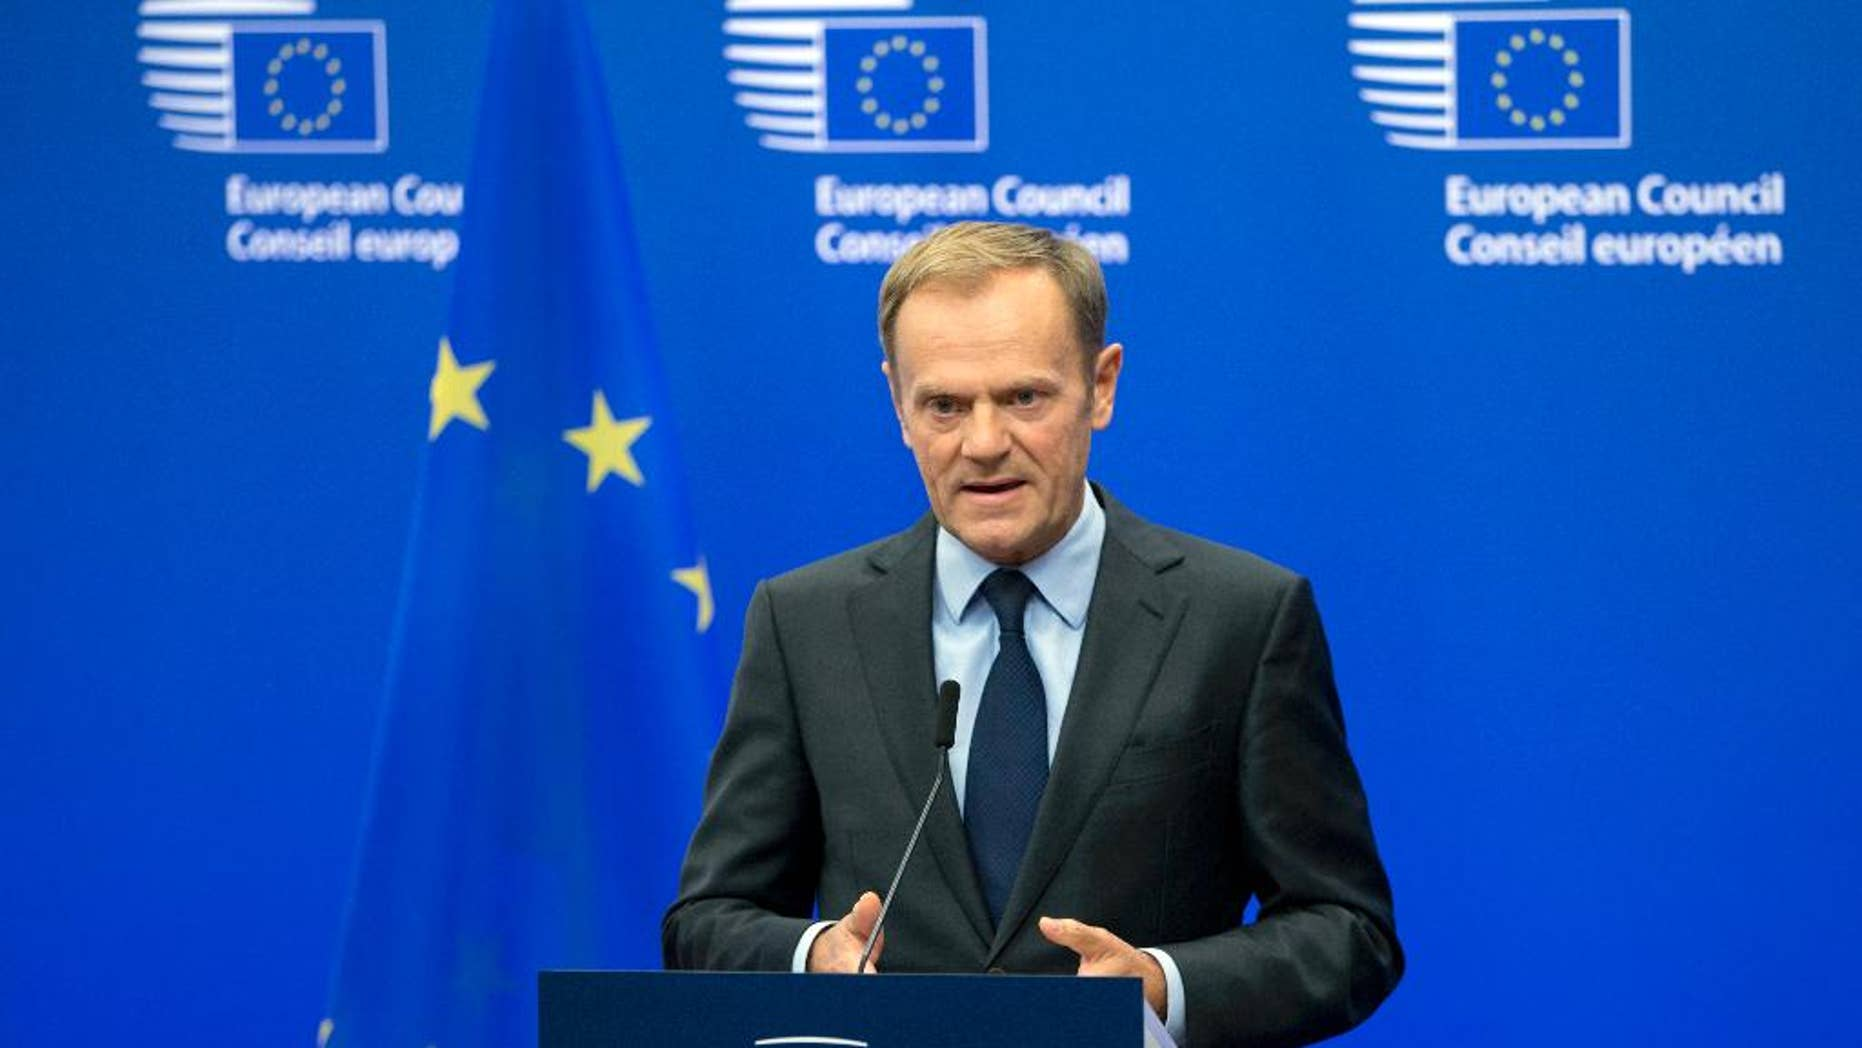 FILE- In this Wednesday, Nov. 9, 2016 file photo, European Council President Donald Tusk reads a statement during a media conference at the EU Council building in Brussels. Tusk says he thinks the European Union will extend sanctions against Russia, but that it will be harder to preserve the West's unity on Moscow when Donald Trump is U.S. president. (AP Photo/Virginia Mayo, File)